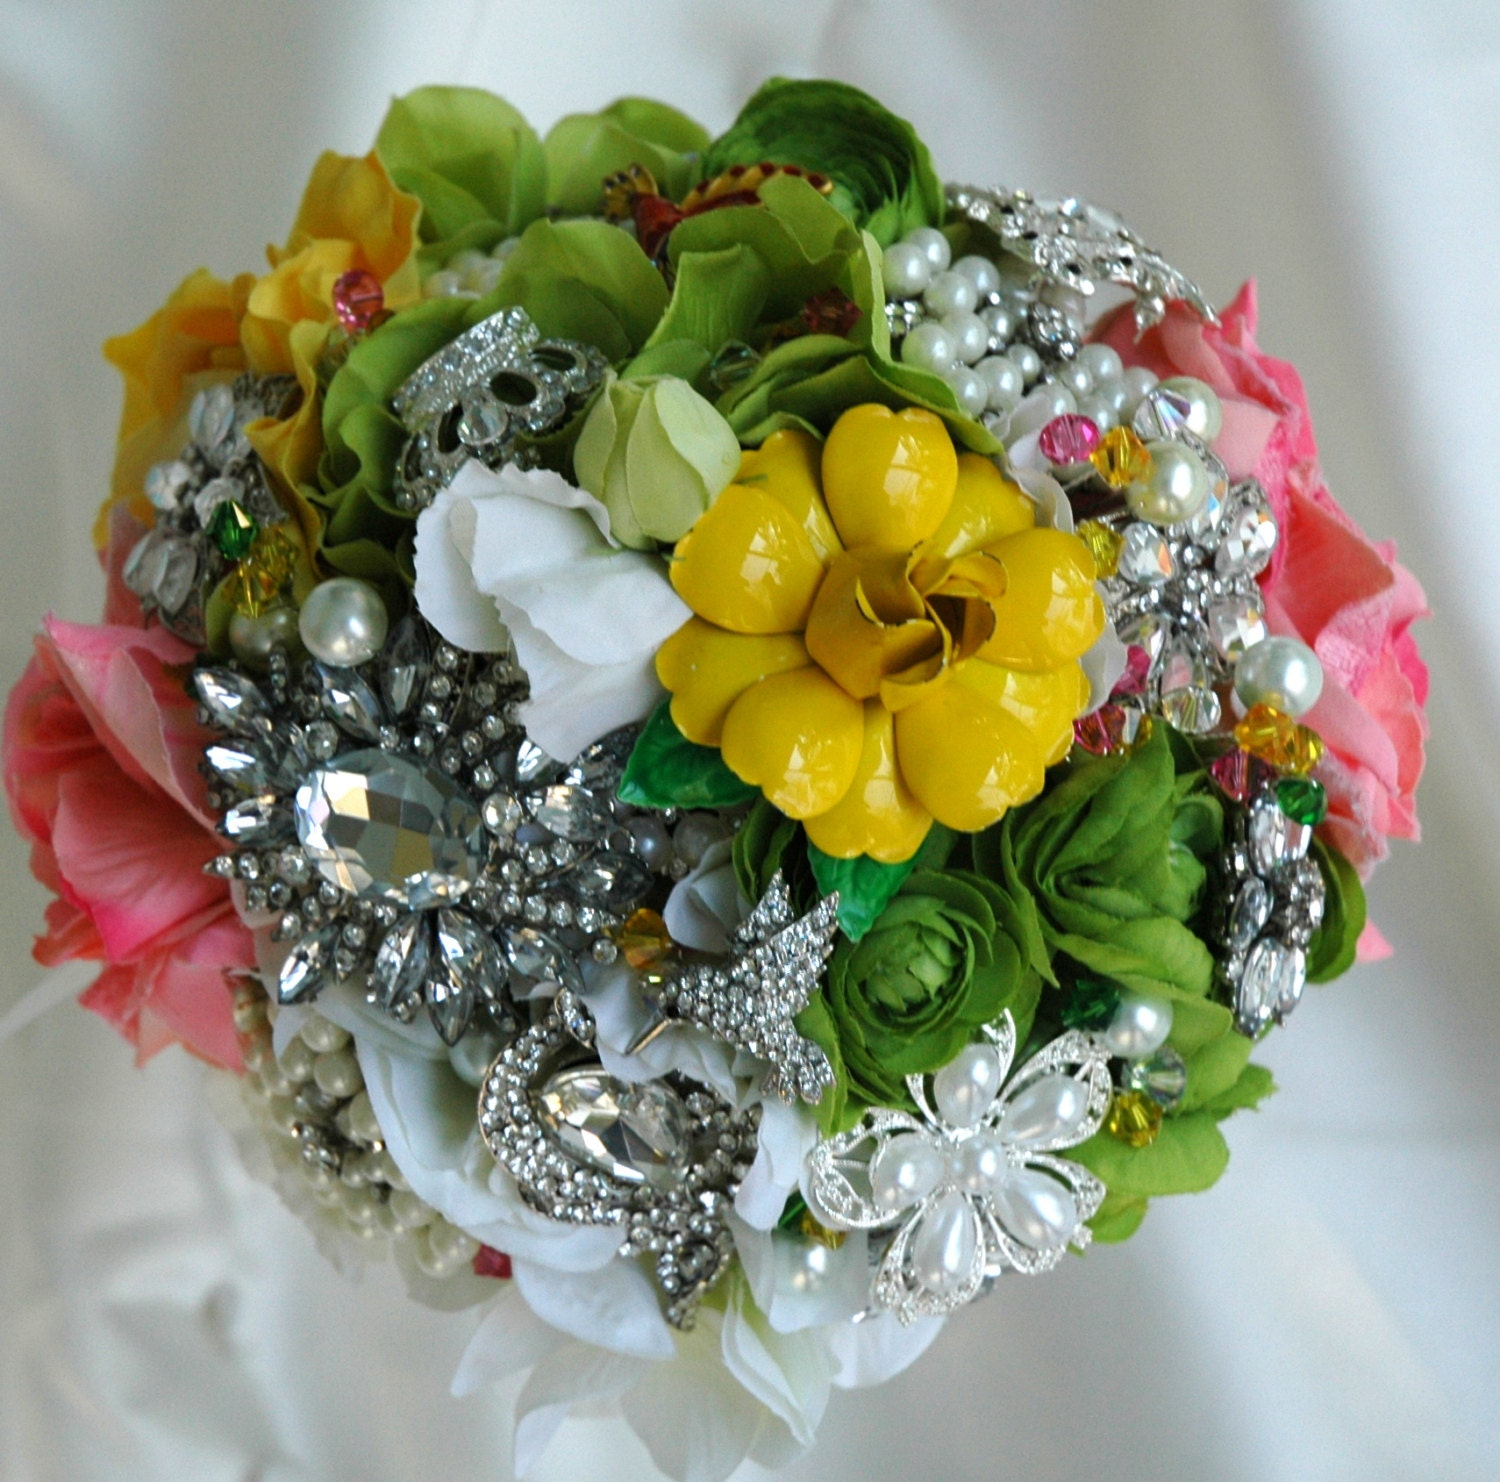 Bridal Bouquet, Wedding bouquet, Garden Wedding Bridal Bouquet, Alternative Bridal Bouquets